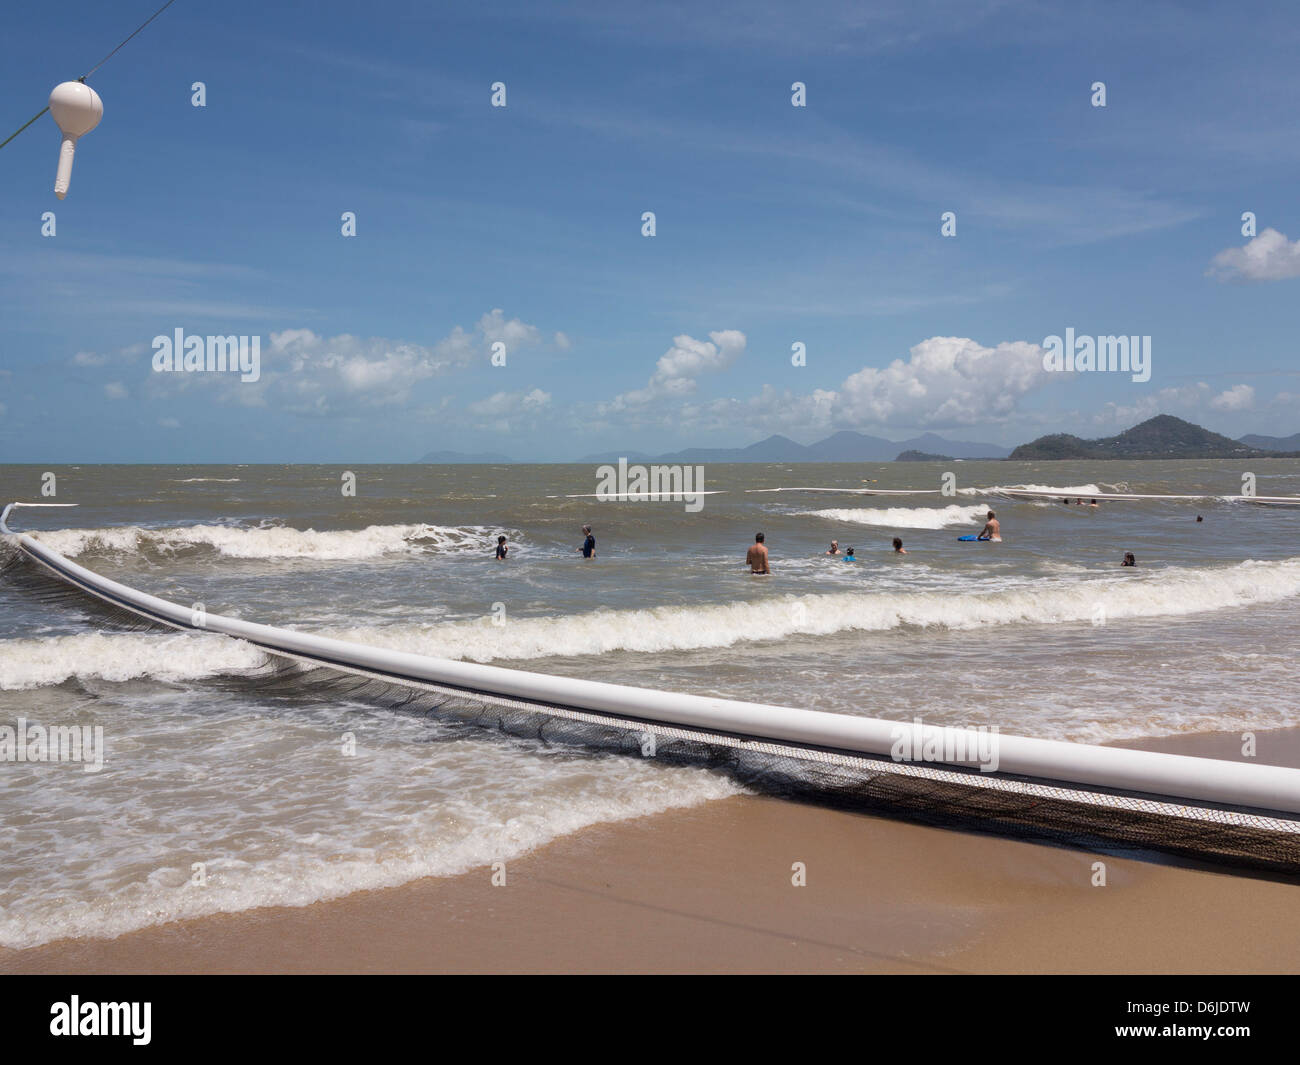 People swimming within stinger protection net at Palm Cove, Cairns, North Queensland, Australia, Pacific - Stock Image